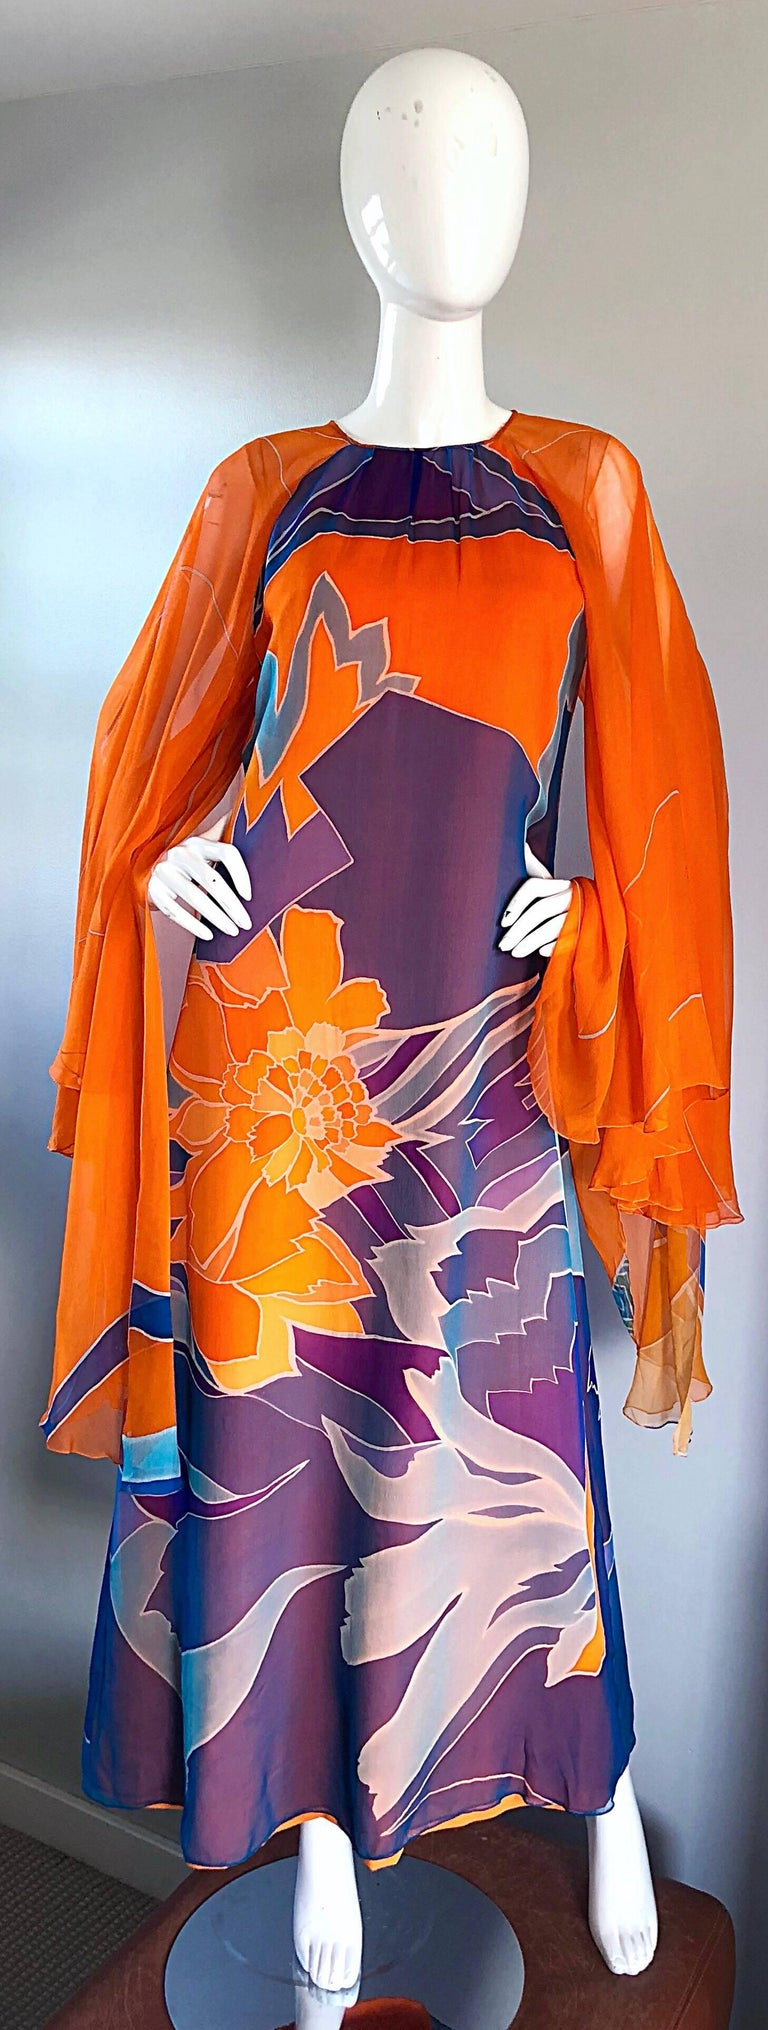 1970s Hanae Mori Couture Bright Orange Silk Chiffon Vintage Caftan Maxi Dress For Sale 6